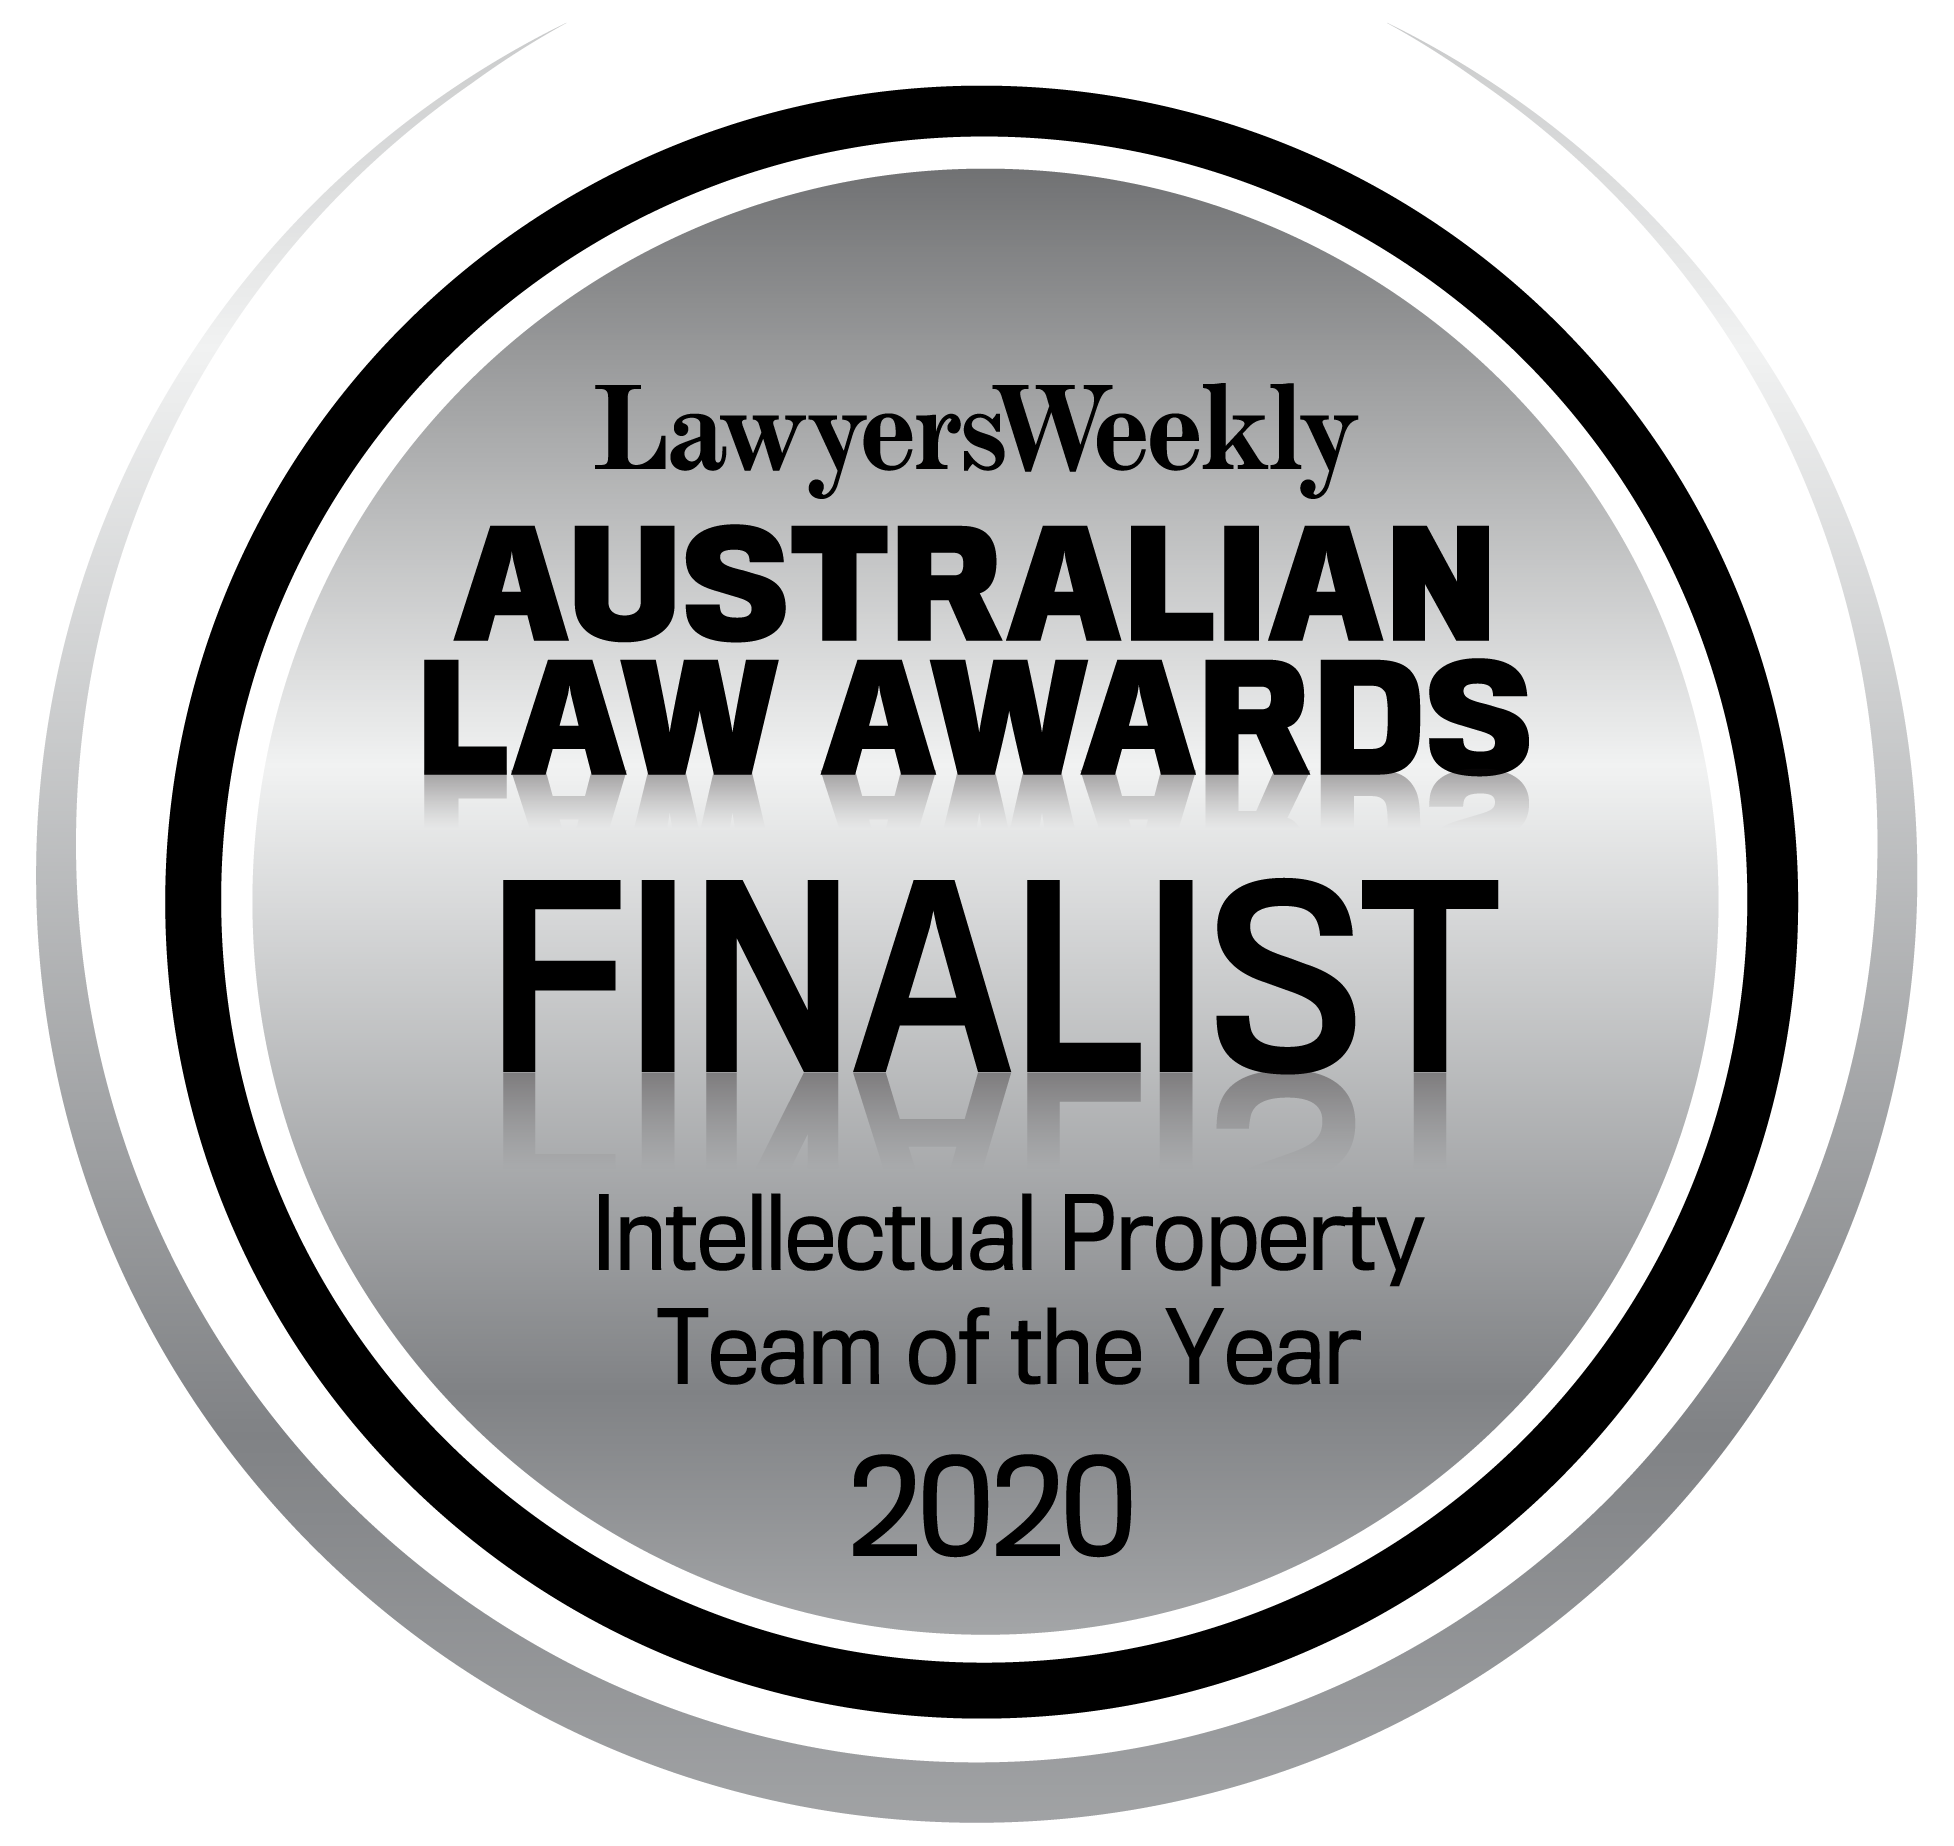 ALA 2020 Finalist Intellectual Property Team of the Year